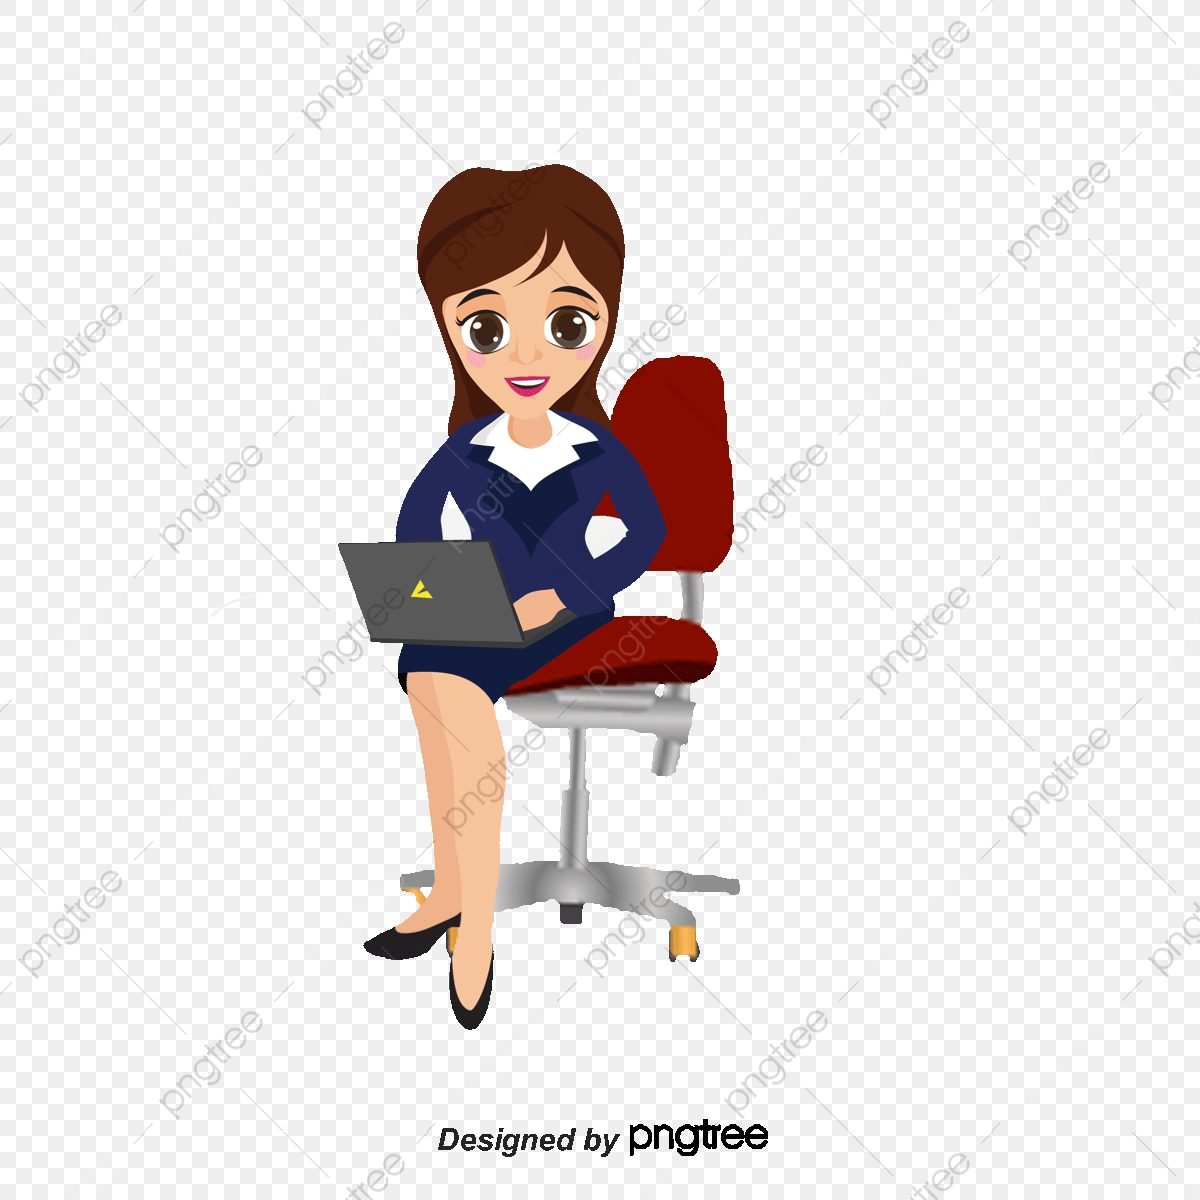 Business Career Woman Vector Material Business Female Workplace Png Transparent Clipart Image And Psd File For Free Download